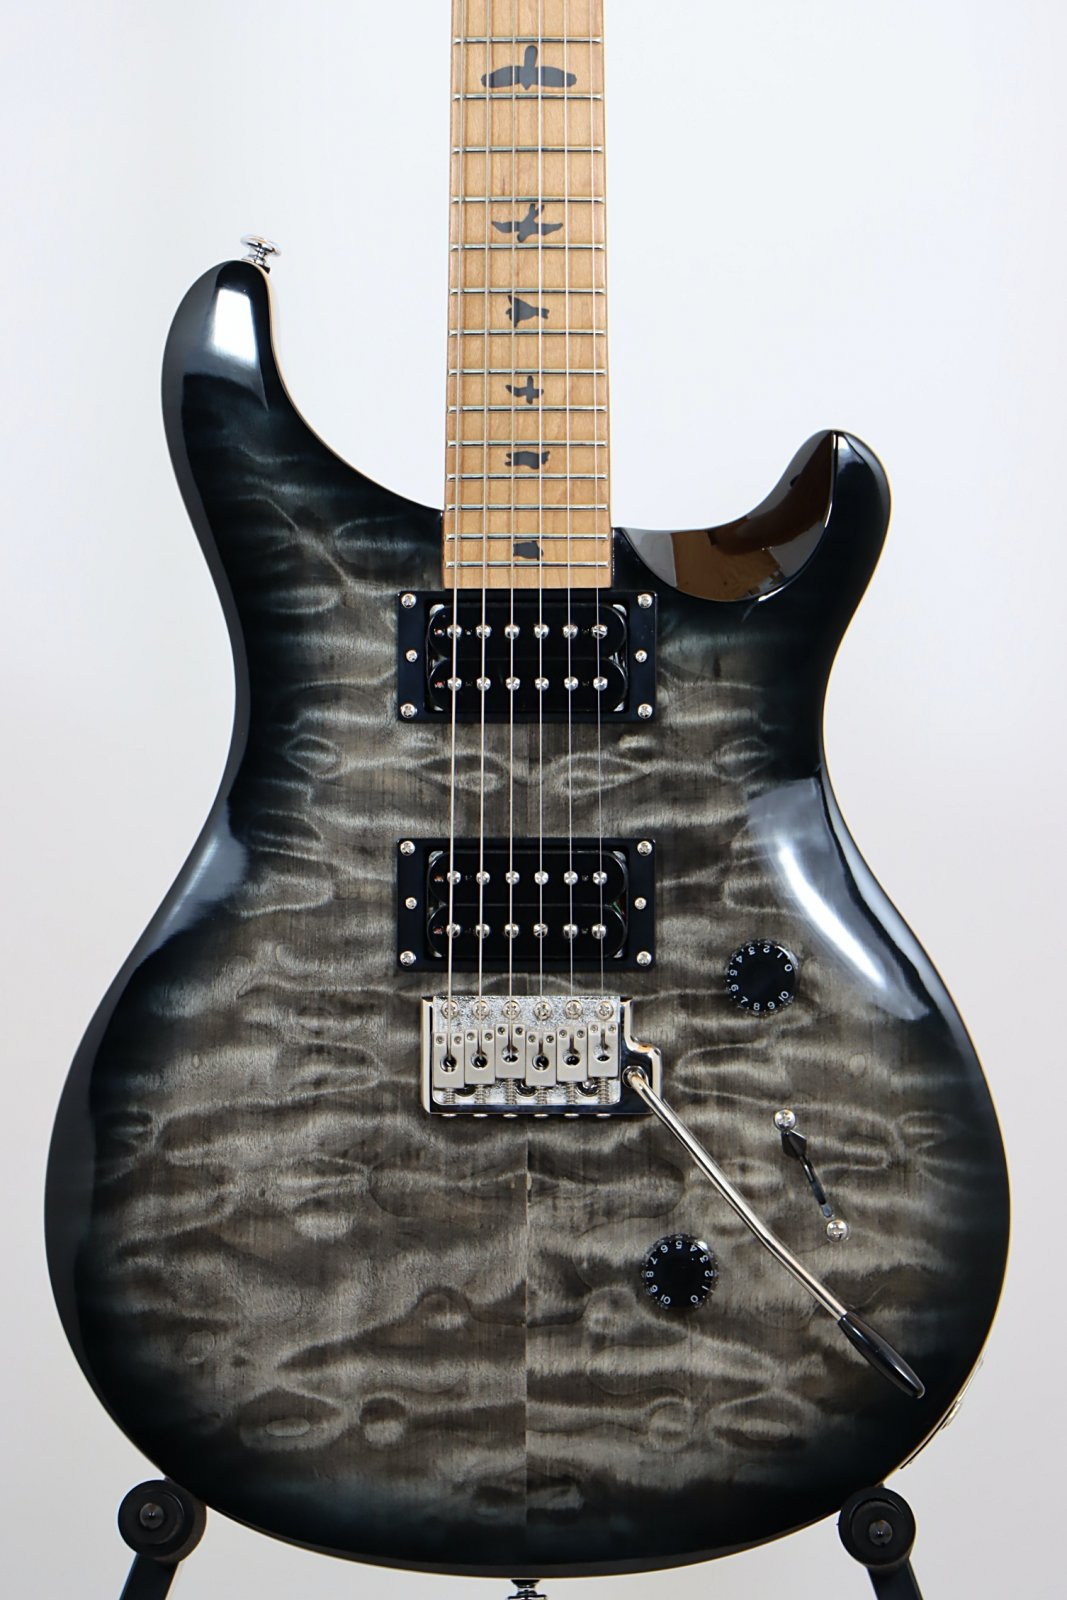 2019 PRS SE Custom 24 Roasted Maple Limited Edition, Charcoal Burst with PRS Gig Bag